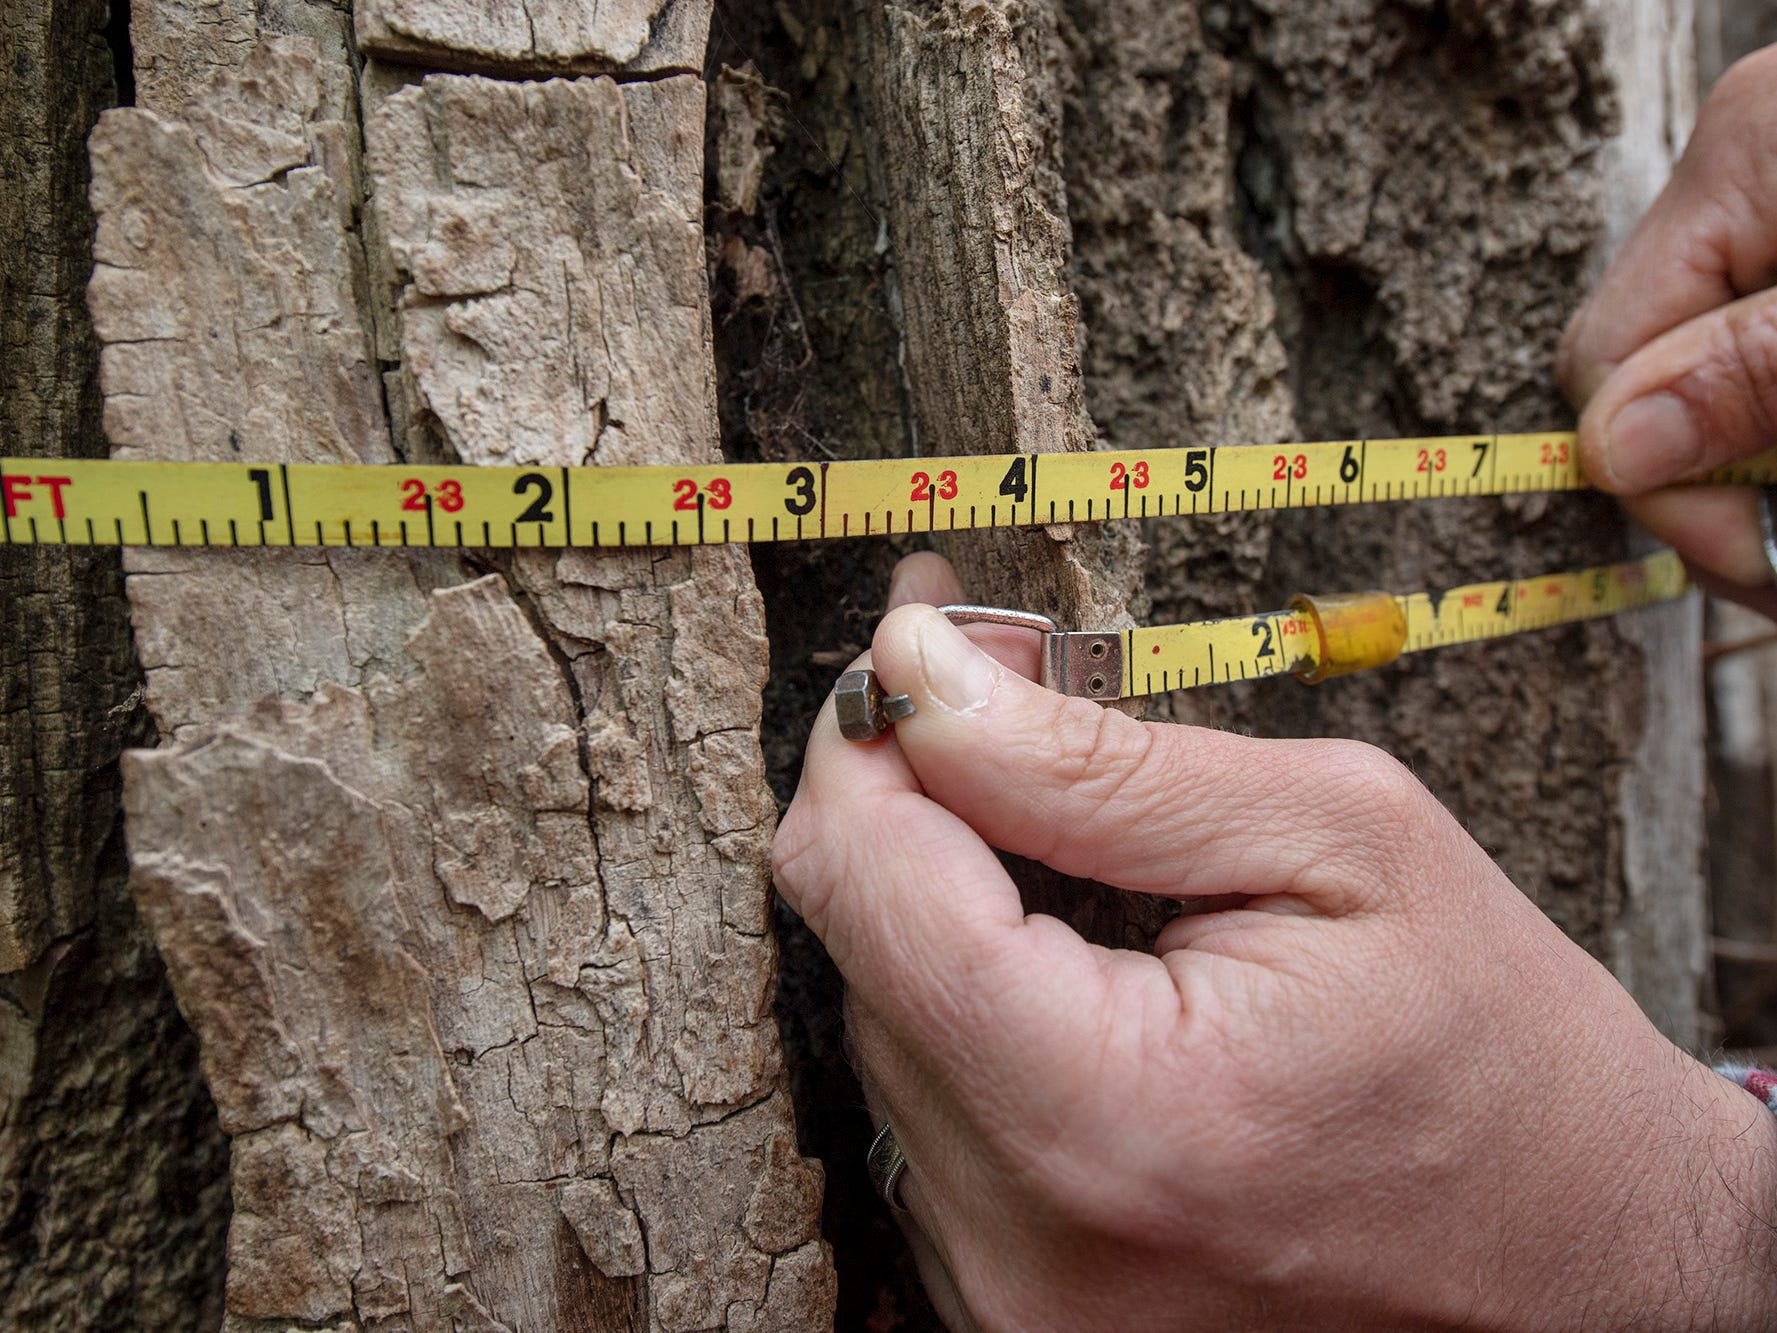 The largest cottonwood in York County measures about 23 feet and three inches in circumference at a predetermined standard height from the ground for measuring trees.